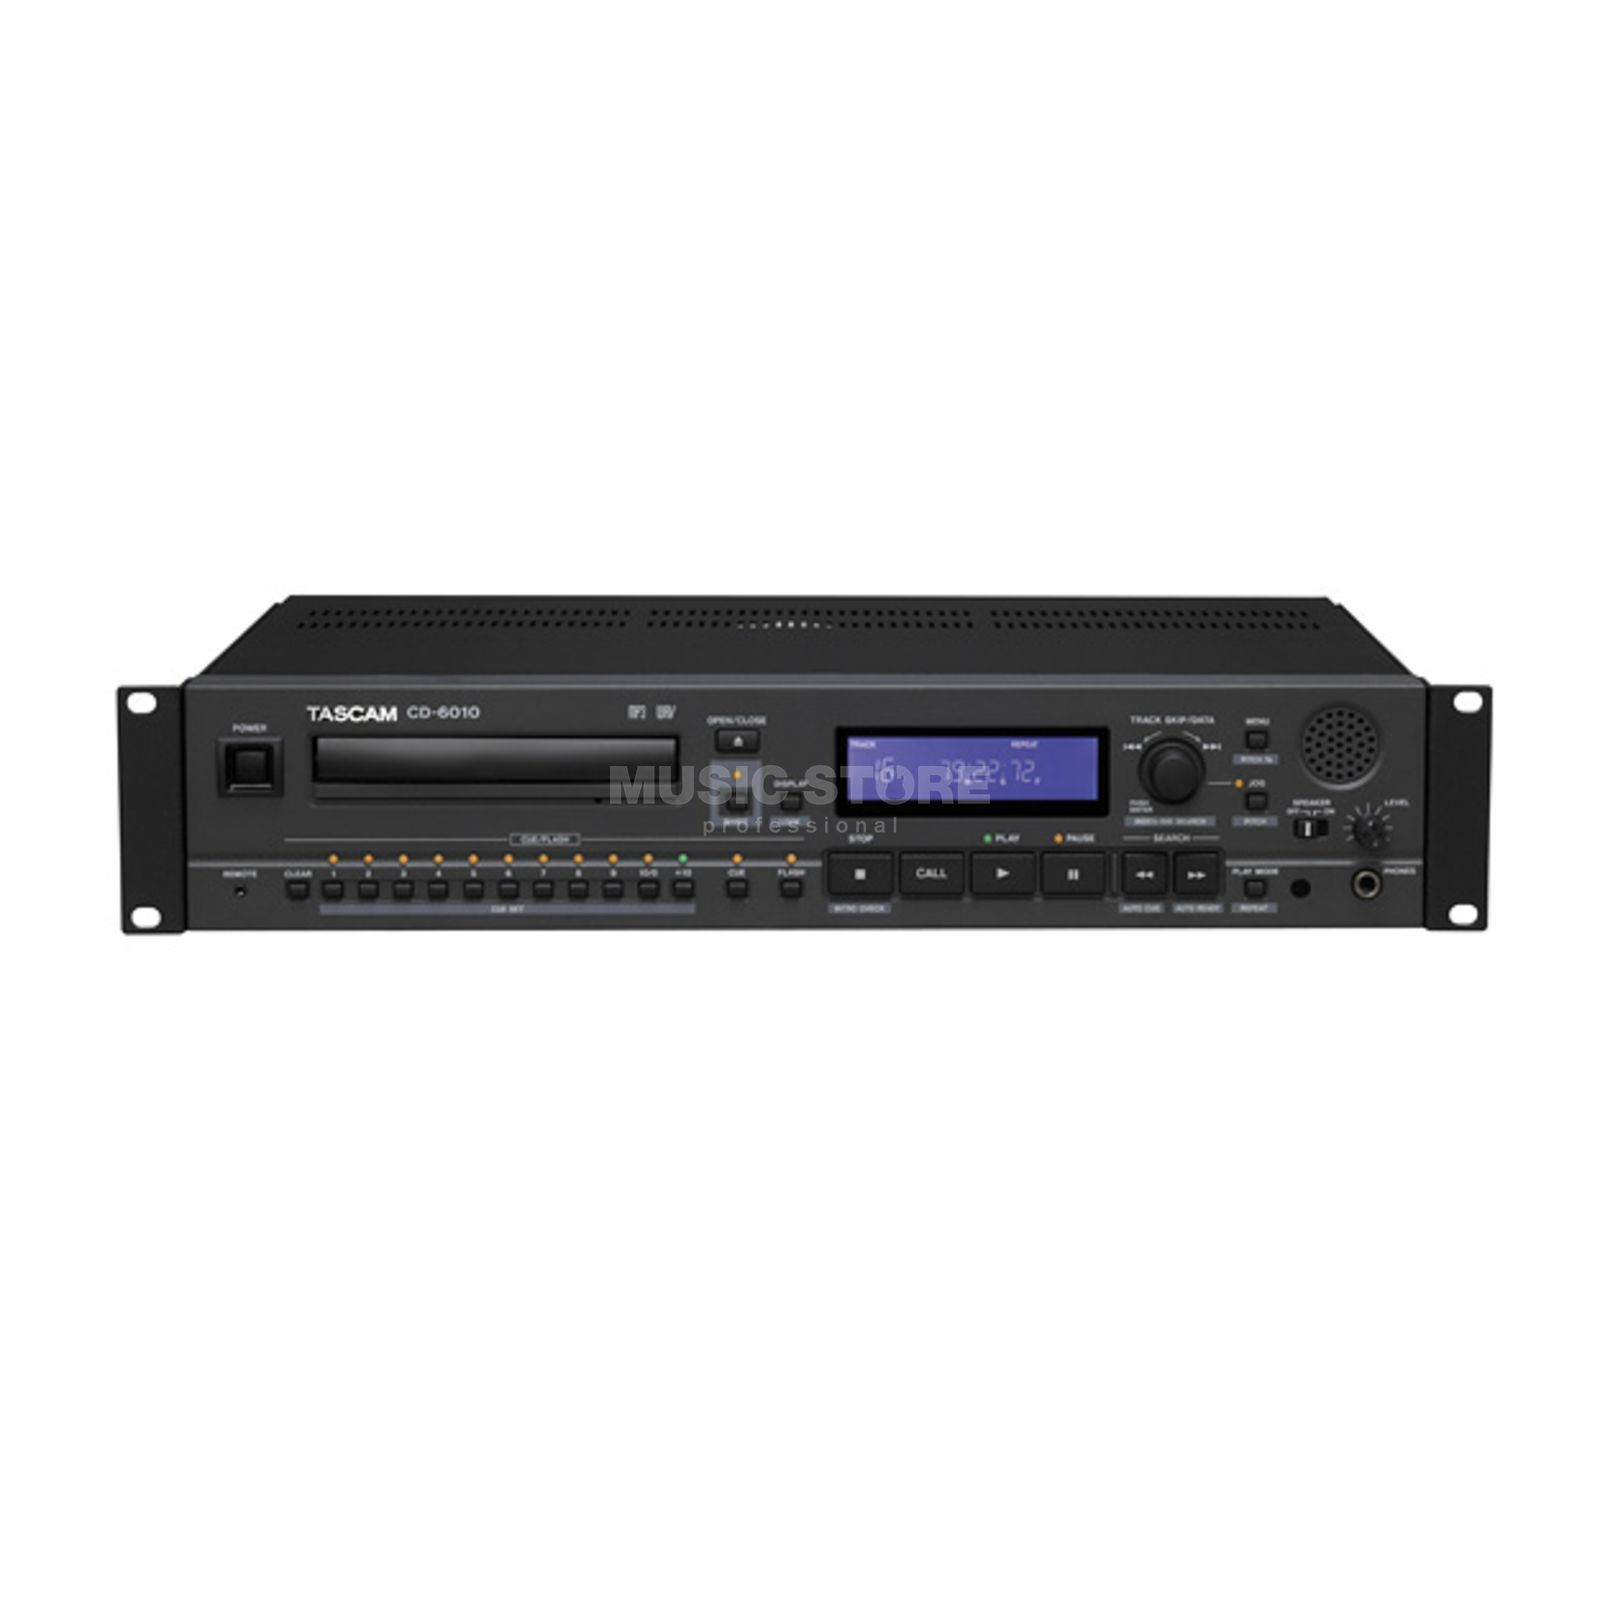 Tascam CD-6010 High-Quality Stereo CD Player Produktbillede